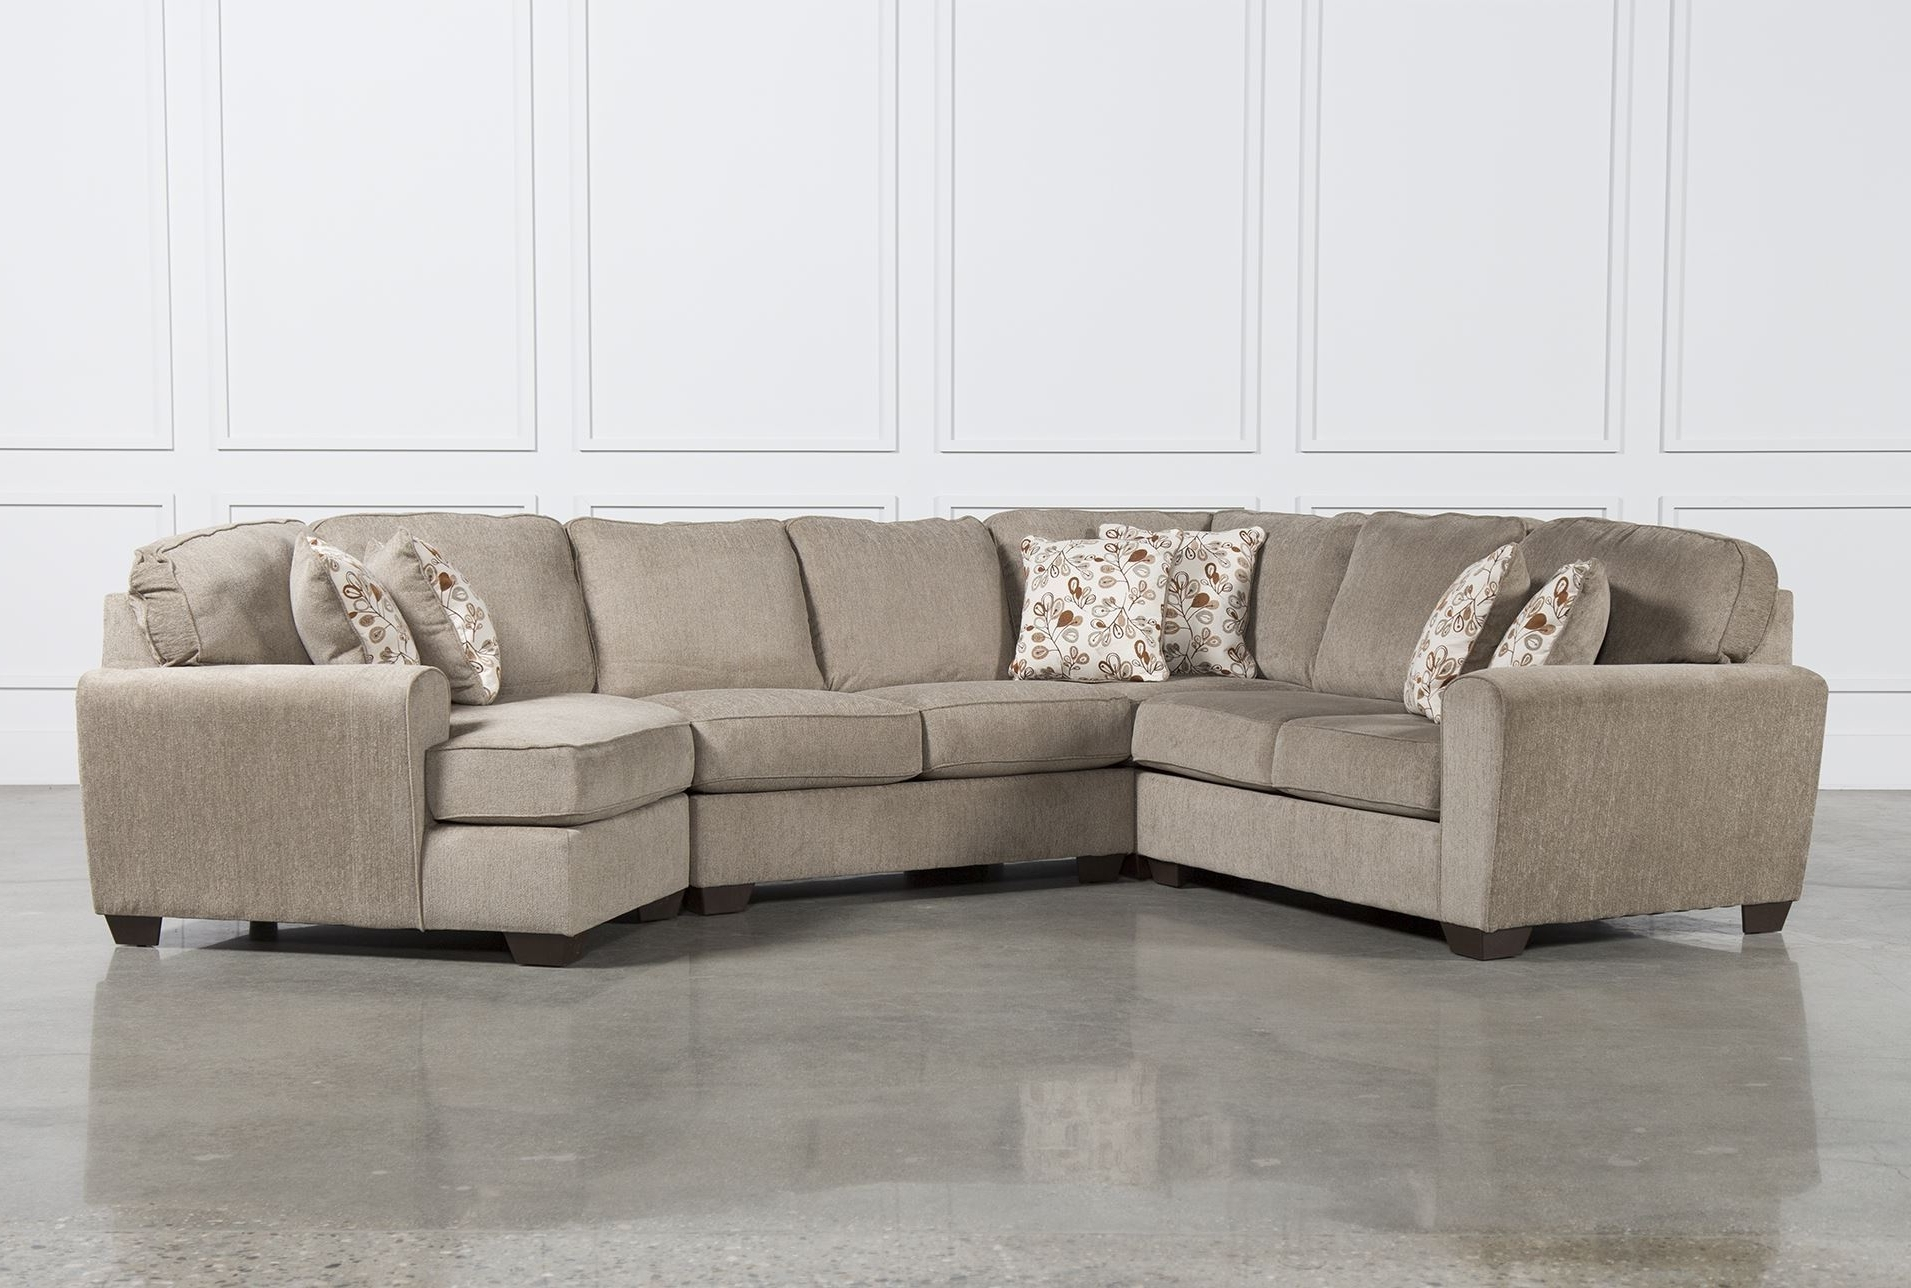 Well Liked Patola Park 4 Piece Sectional W Raf Cuddler Living Spaces In Sofa Within Sectional Sofas With Cuddler (View 4 of 20)